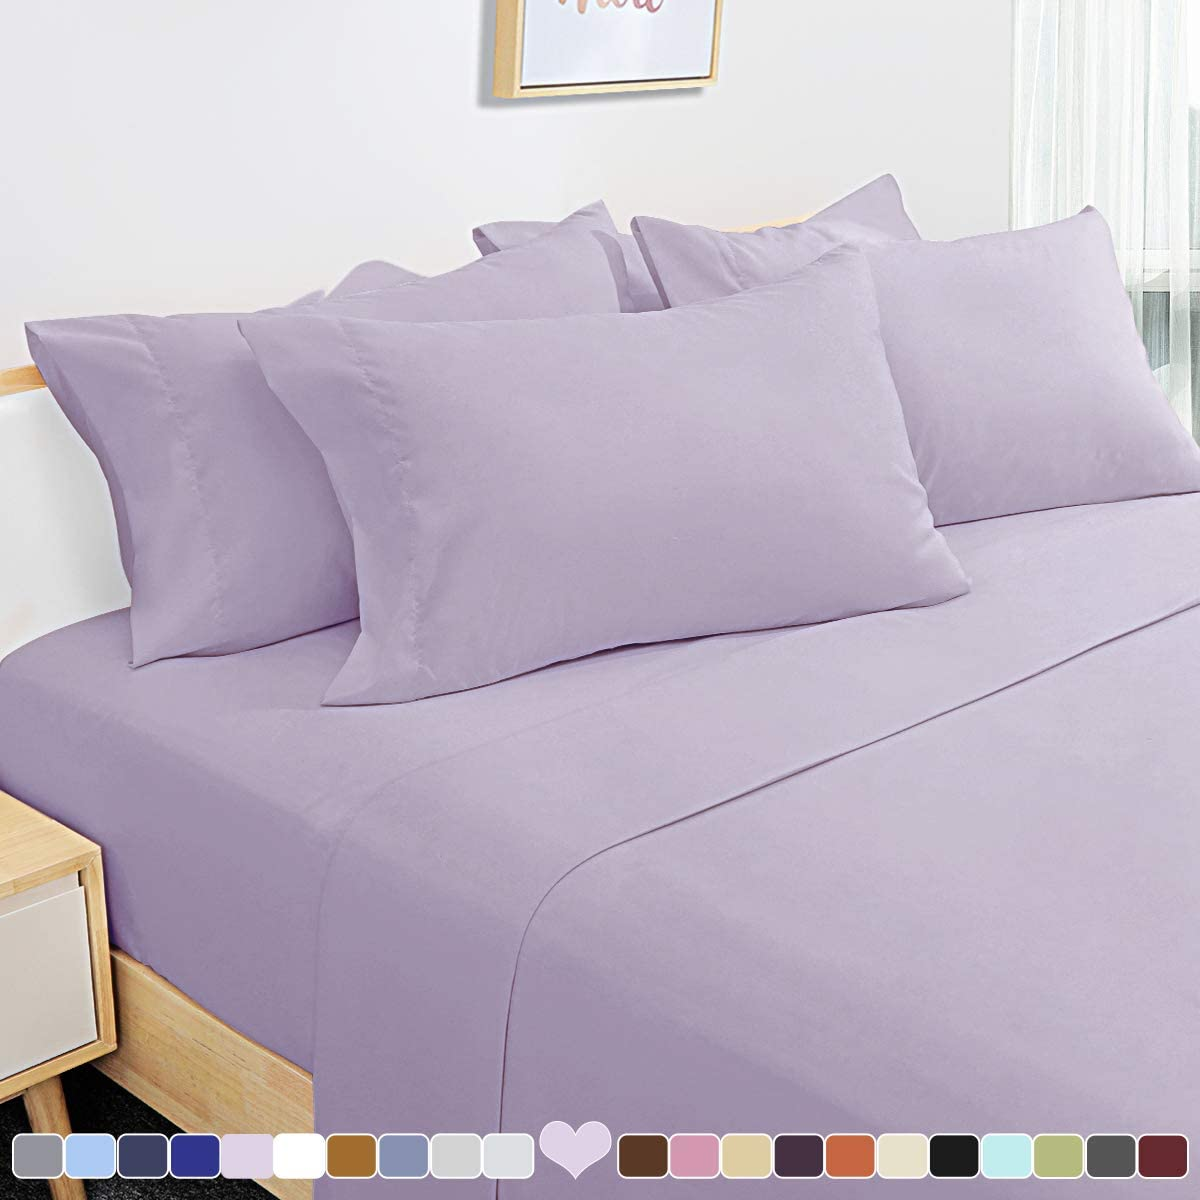 HOMEIDEAS 6 Piece Bed Sheets Set Extra Soft Brushed Microfiber 1800 Bedding Sheets Deep Pocket, Wrinkle & Fade Free (Queen,Lavender)